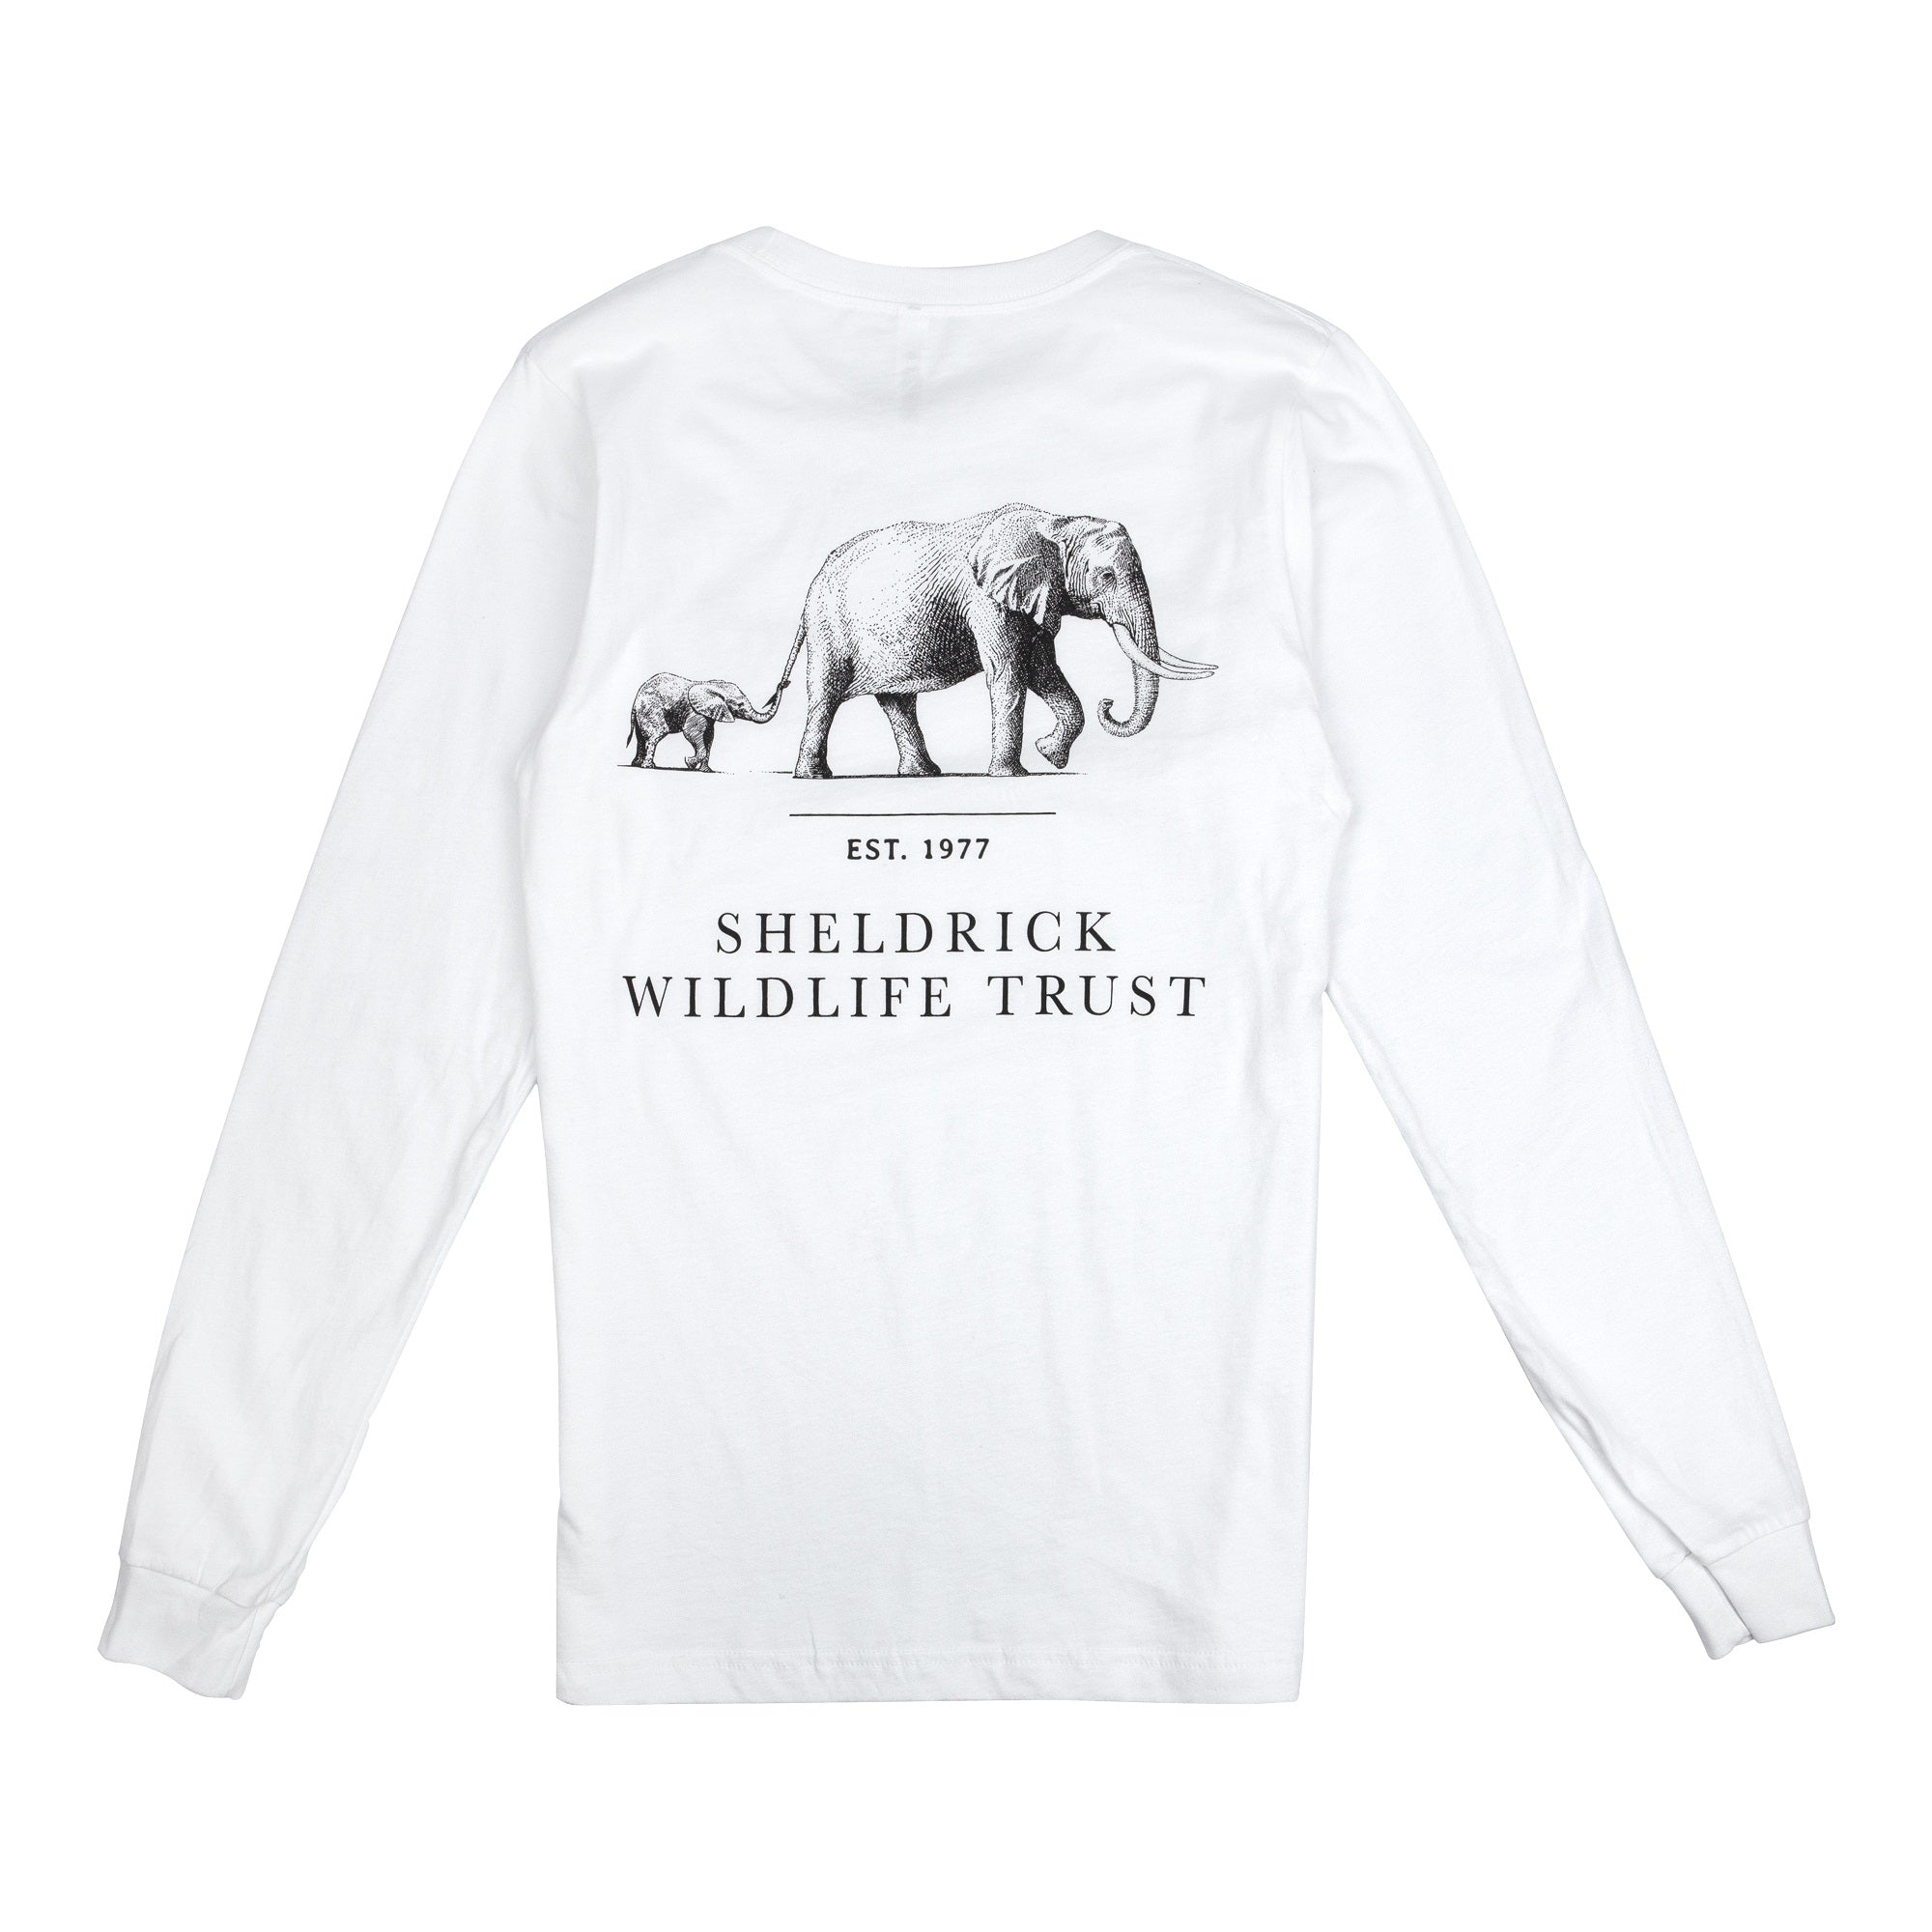 SWT Unisex White Long-Sleeve Shirt